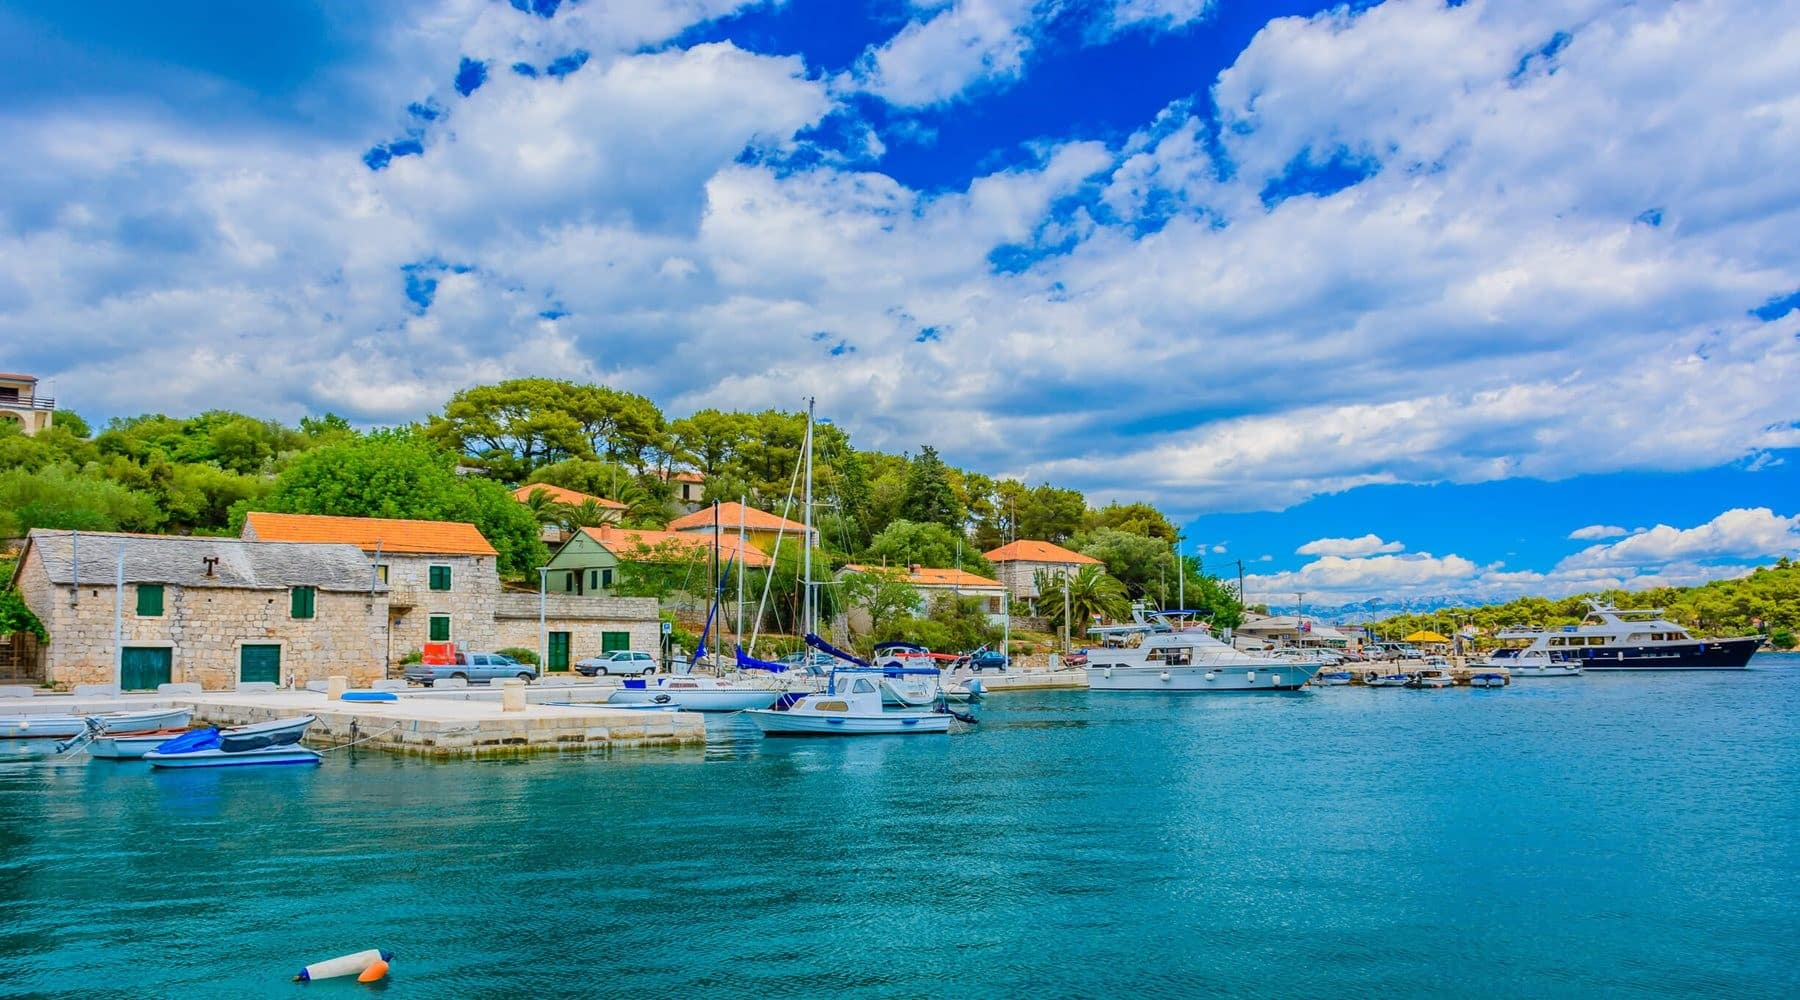 Itinerary Day 5: set sail for Solta, Stari Grad in Croatia